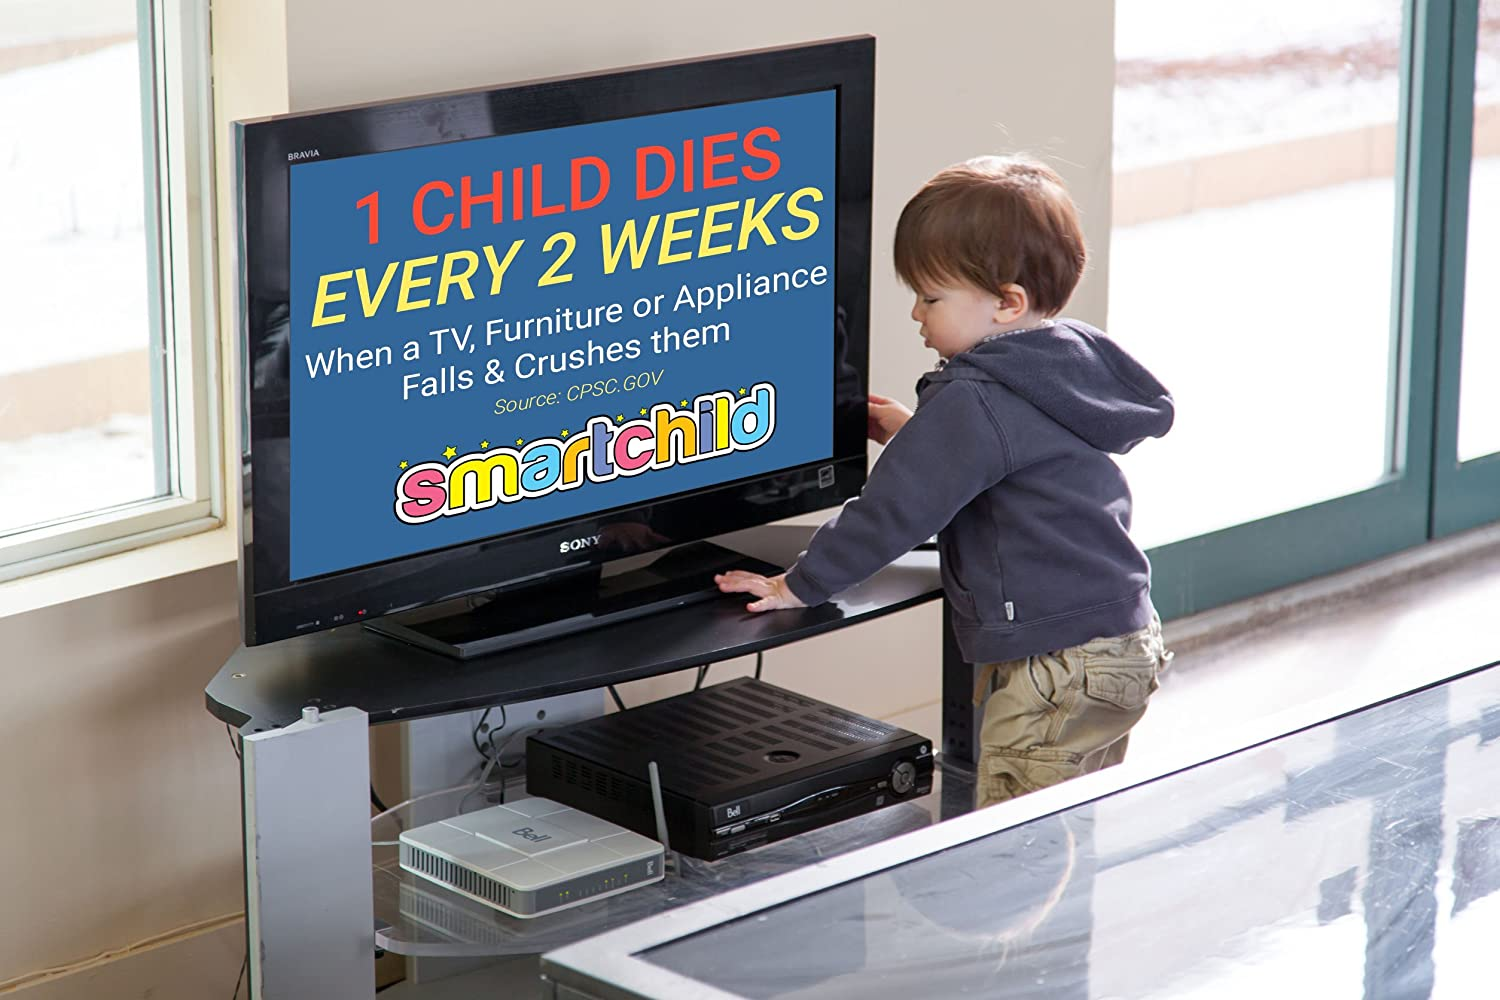 | Baby /& Child Proof 2 x Black Straps Extra Strong Metal Seniors Safety SmartChild Anti Tip Safety Straps Earthquake /& RV Protection Anchor Flat Screen TV or Furniture to Wall Nickel Effect